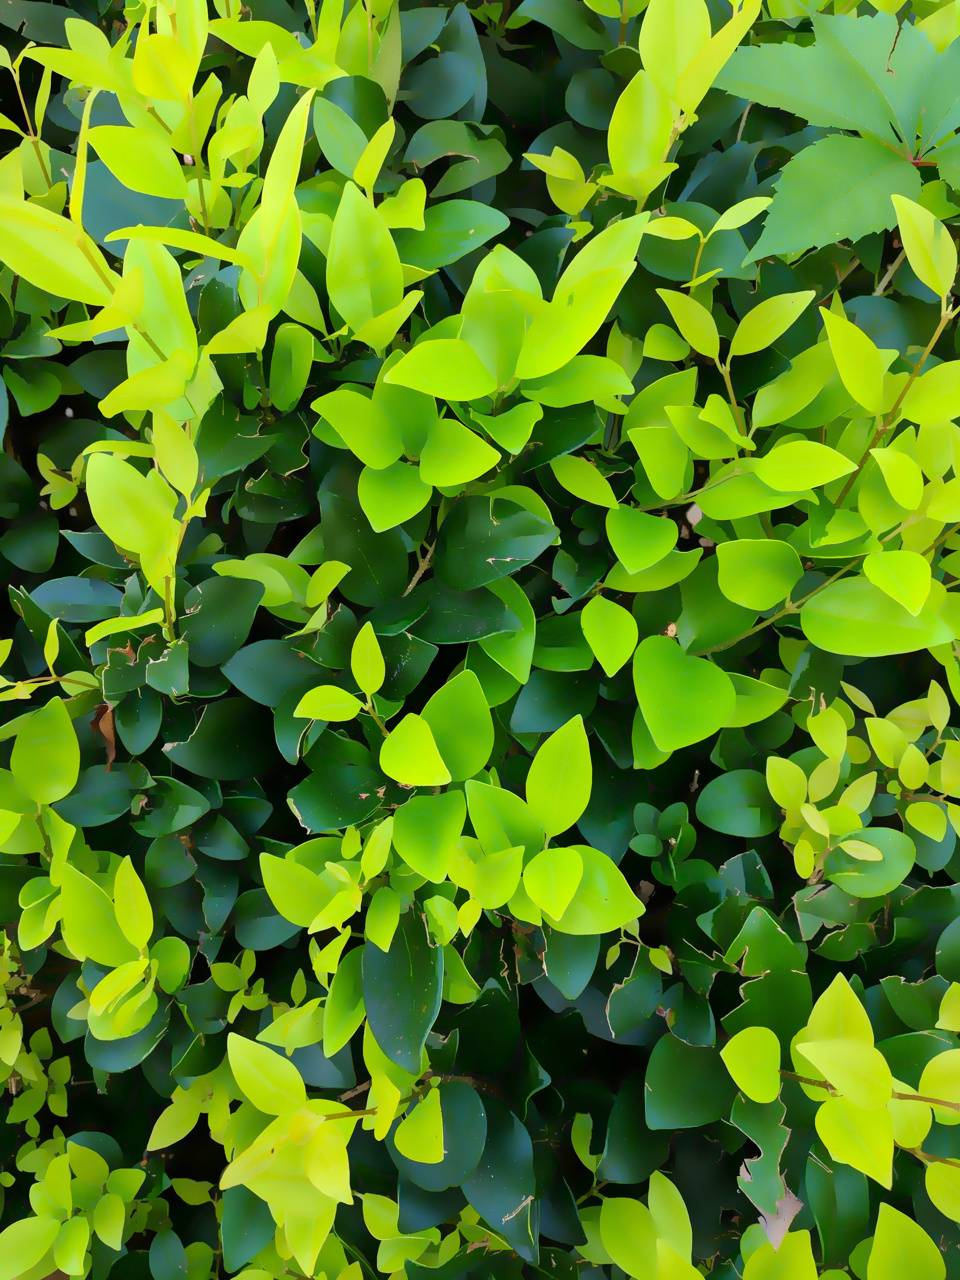 Green Leaves of Fall